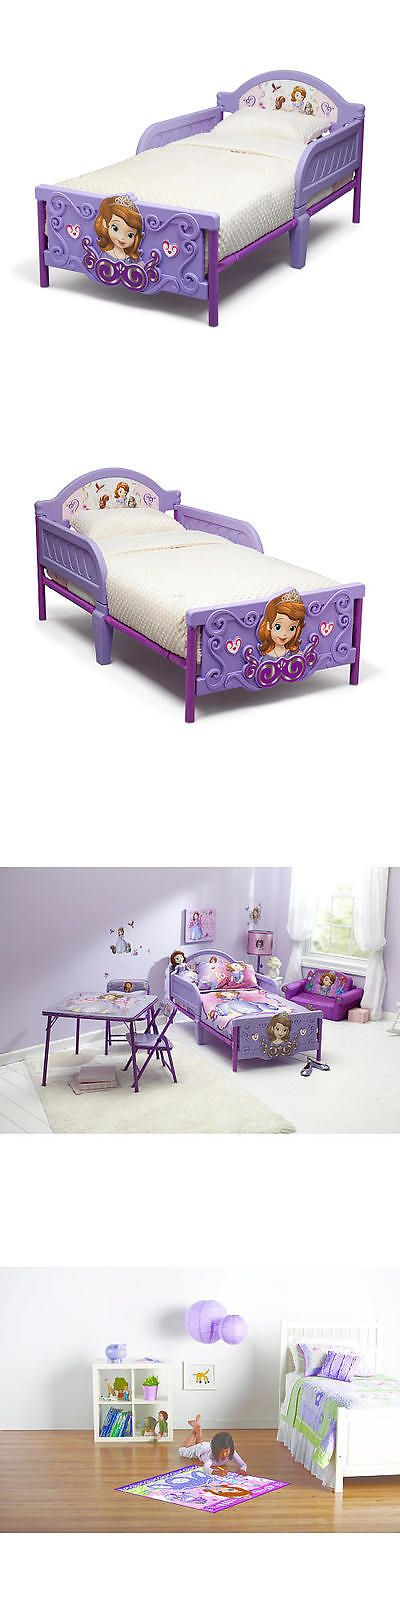 Kids Furniture: Disney Jr. Sofia The First 3D Toddler Bed BUY IT NOW ONLY: $59.99